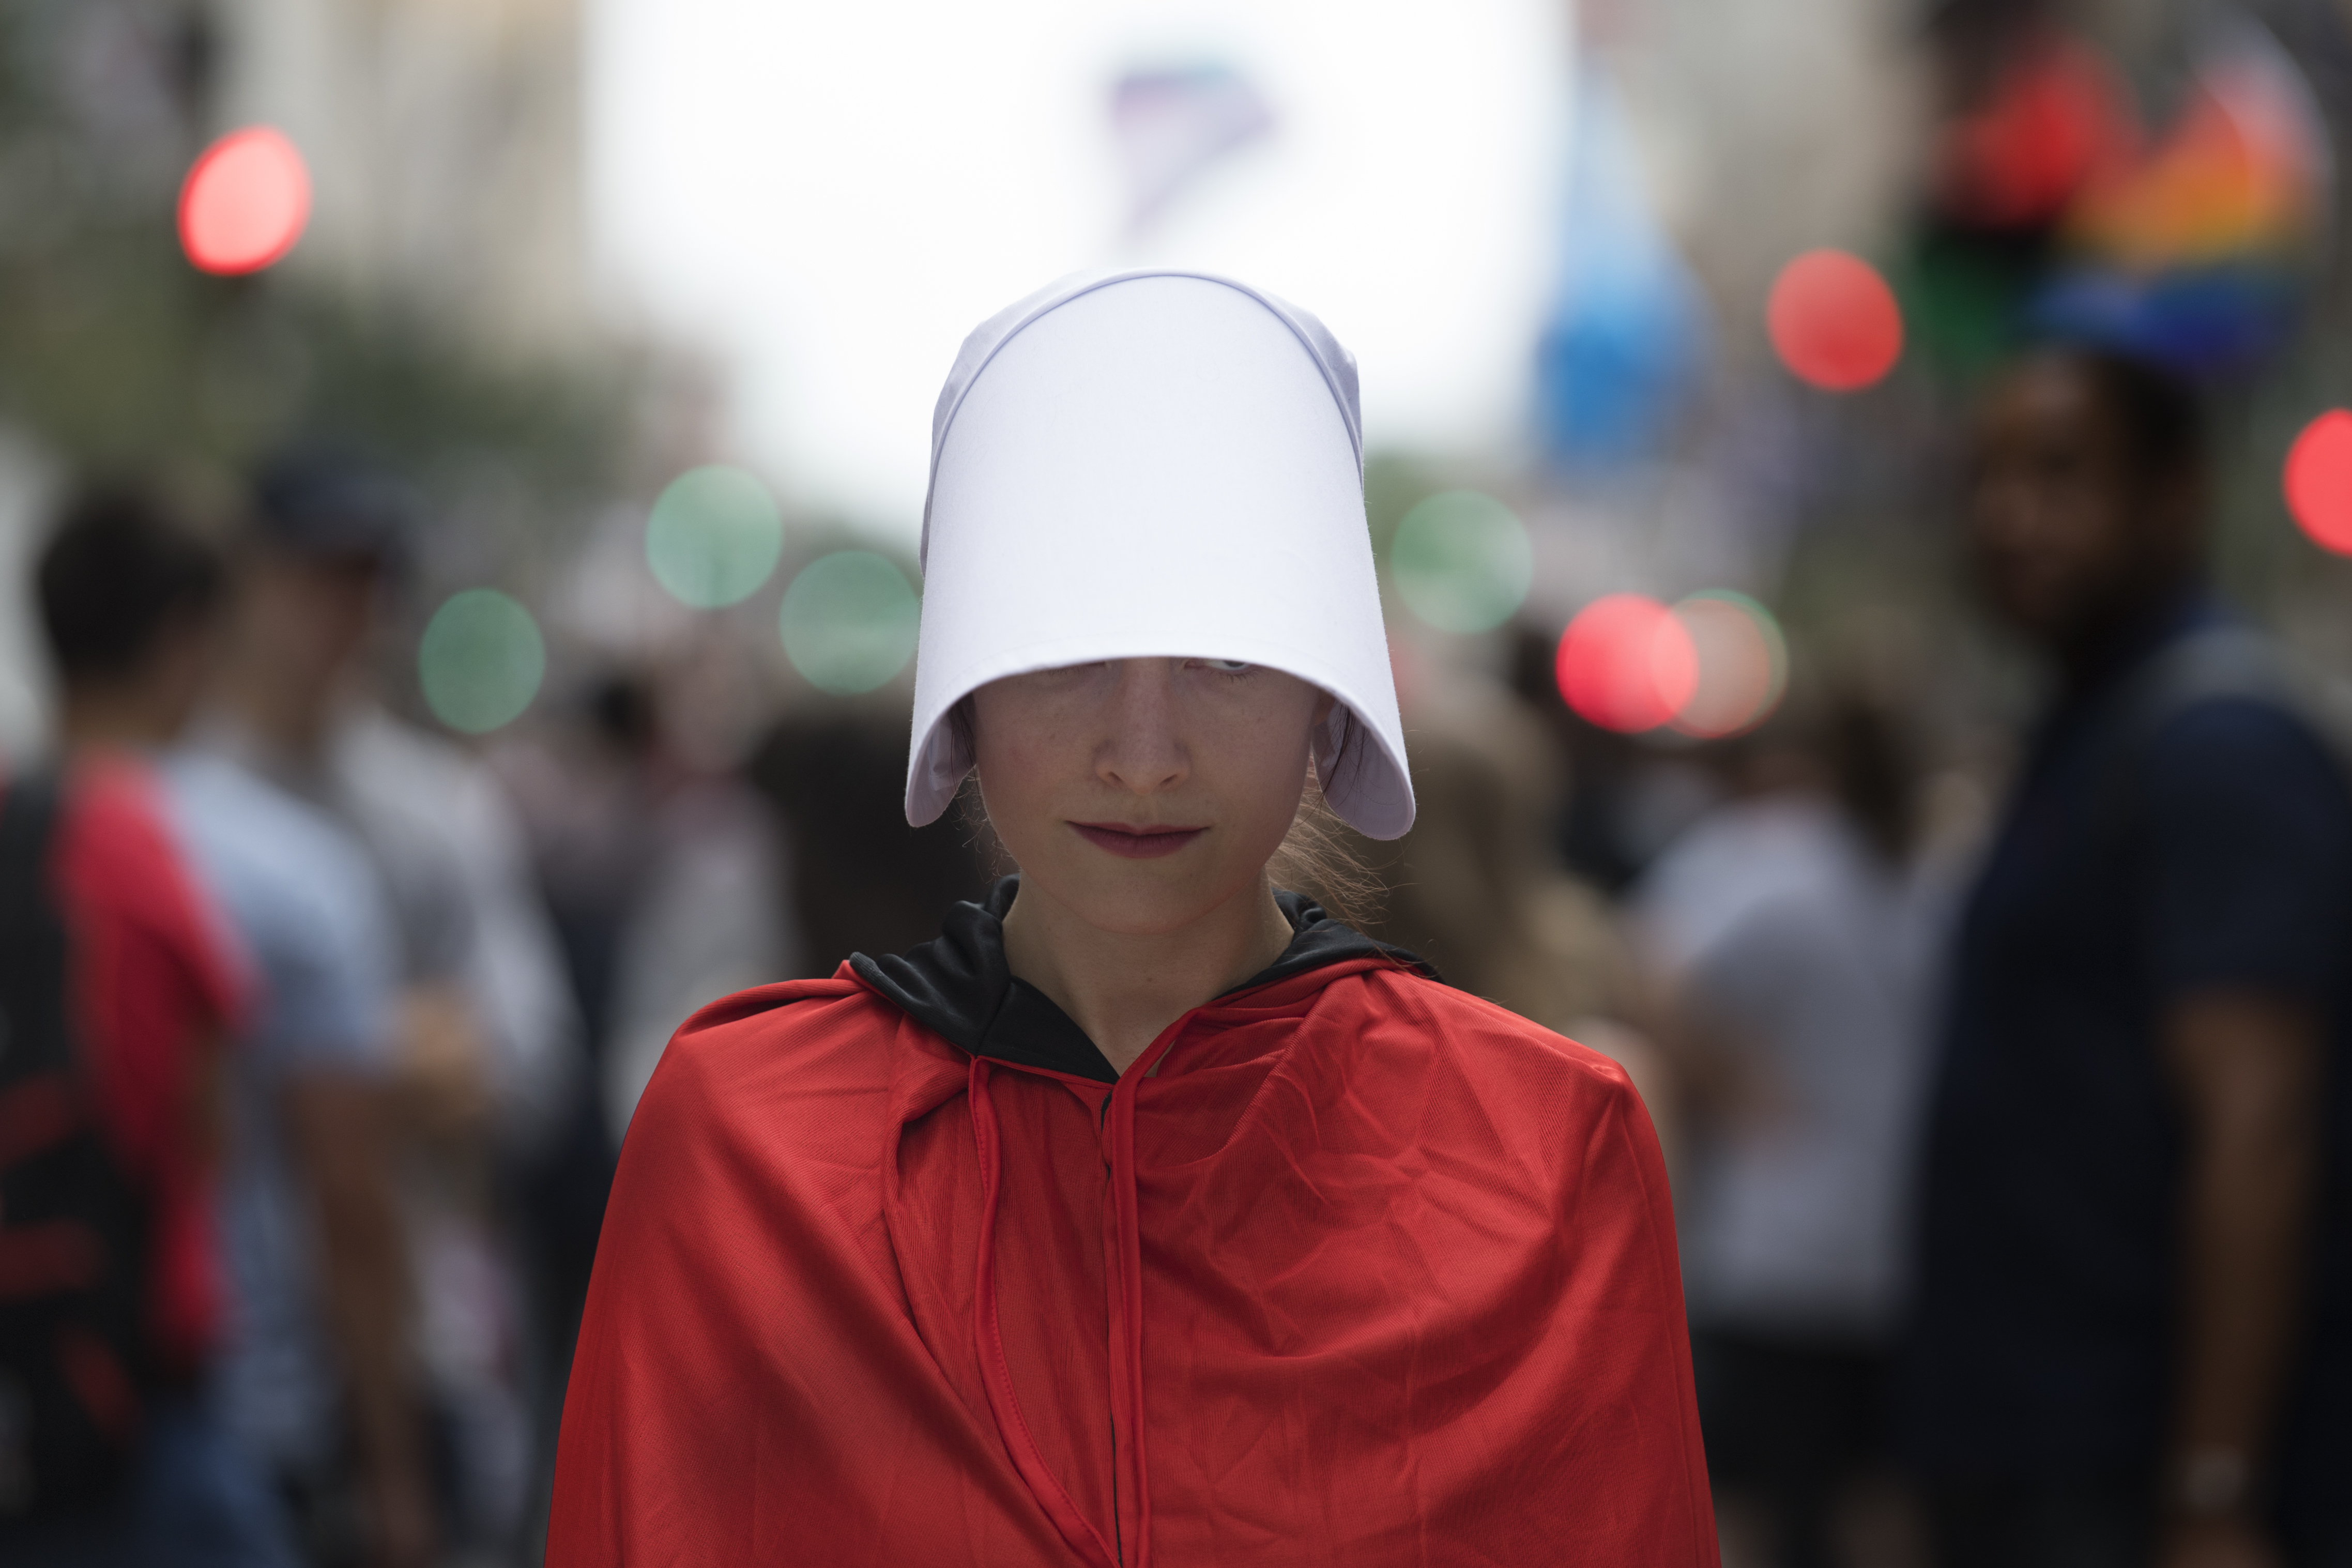 An unidentified woman protest at Broad Street for the pending arrival of Vice President Mike Pence at the Union League, in Philadelphia, Monday July 23, 2018.